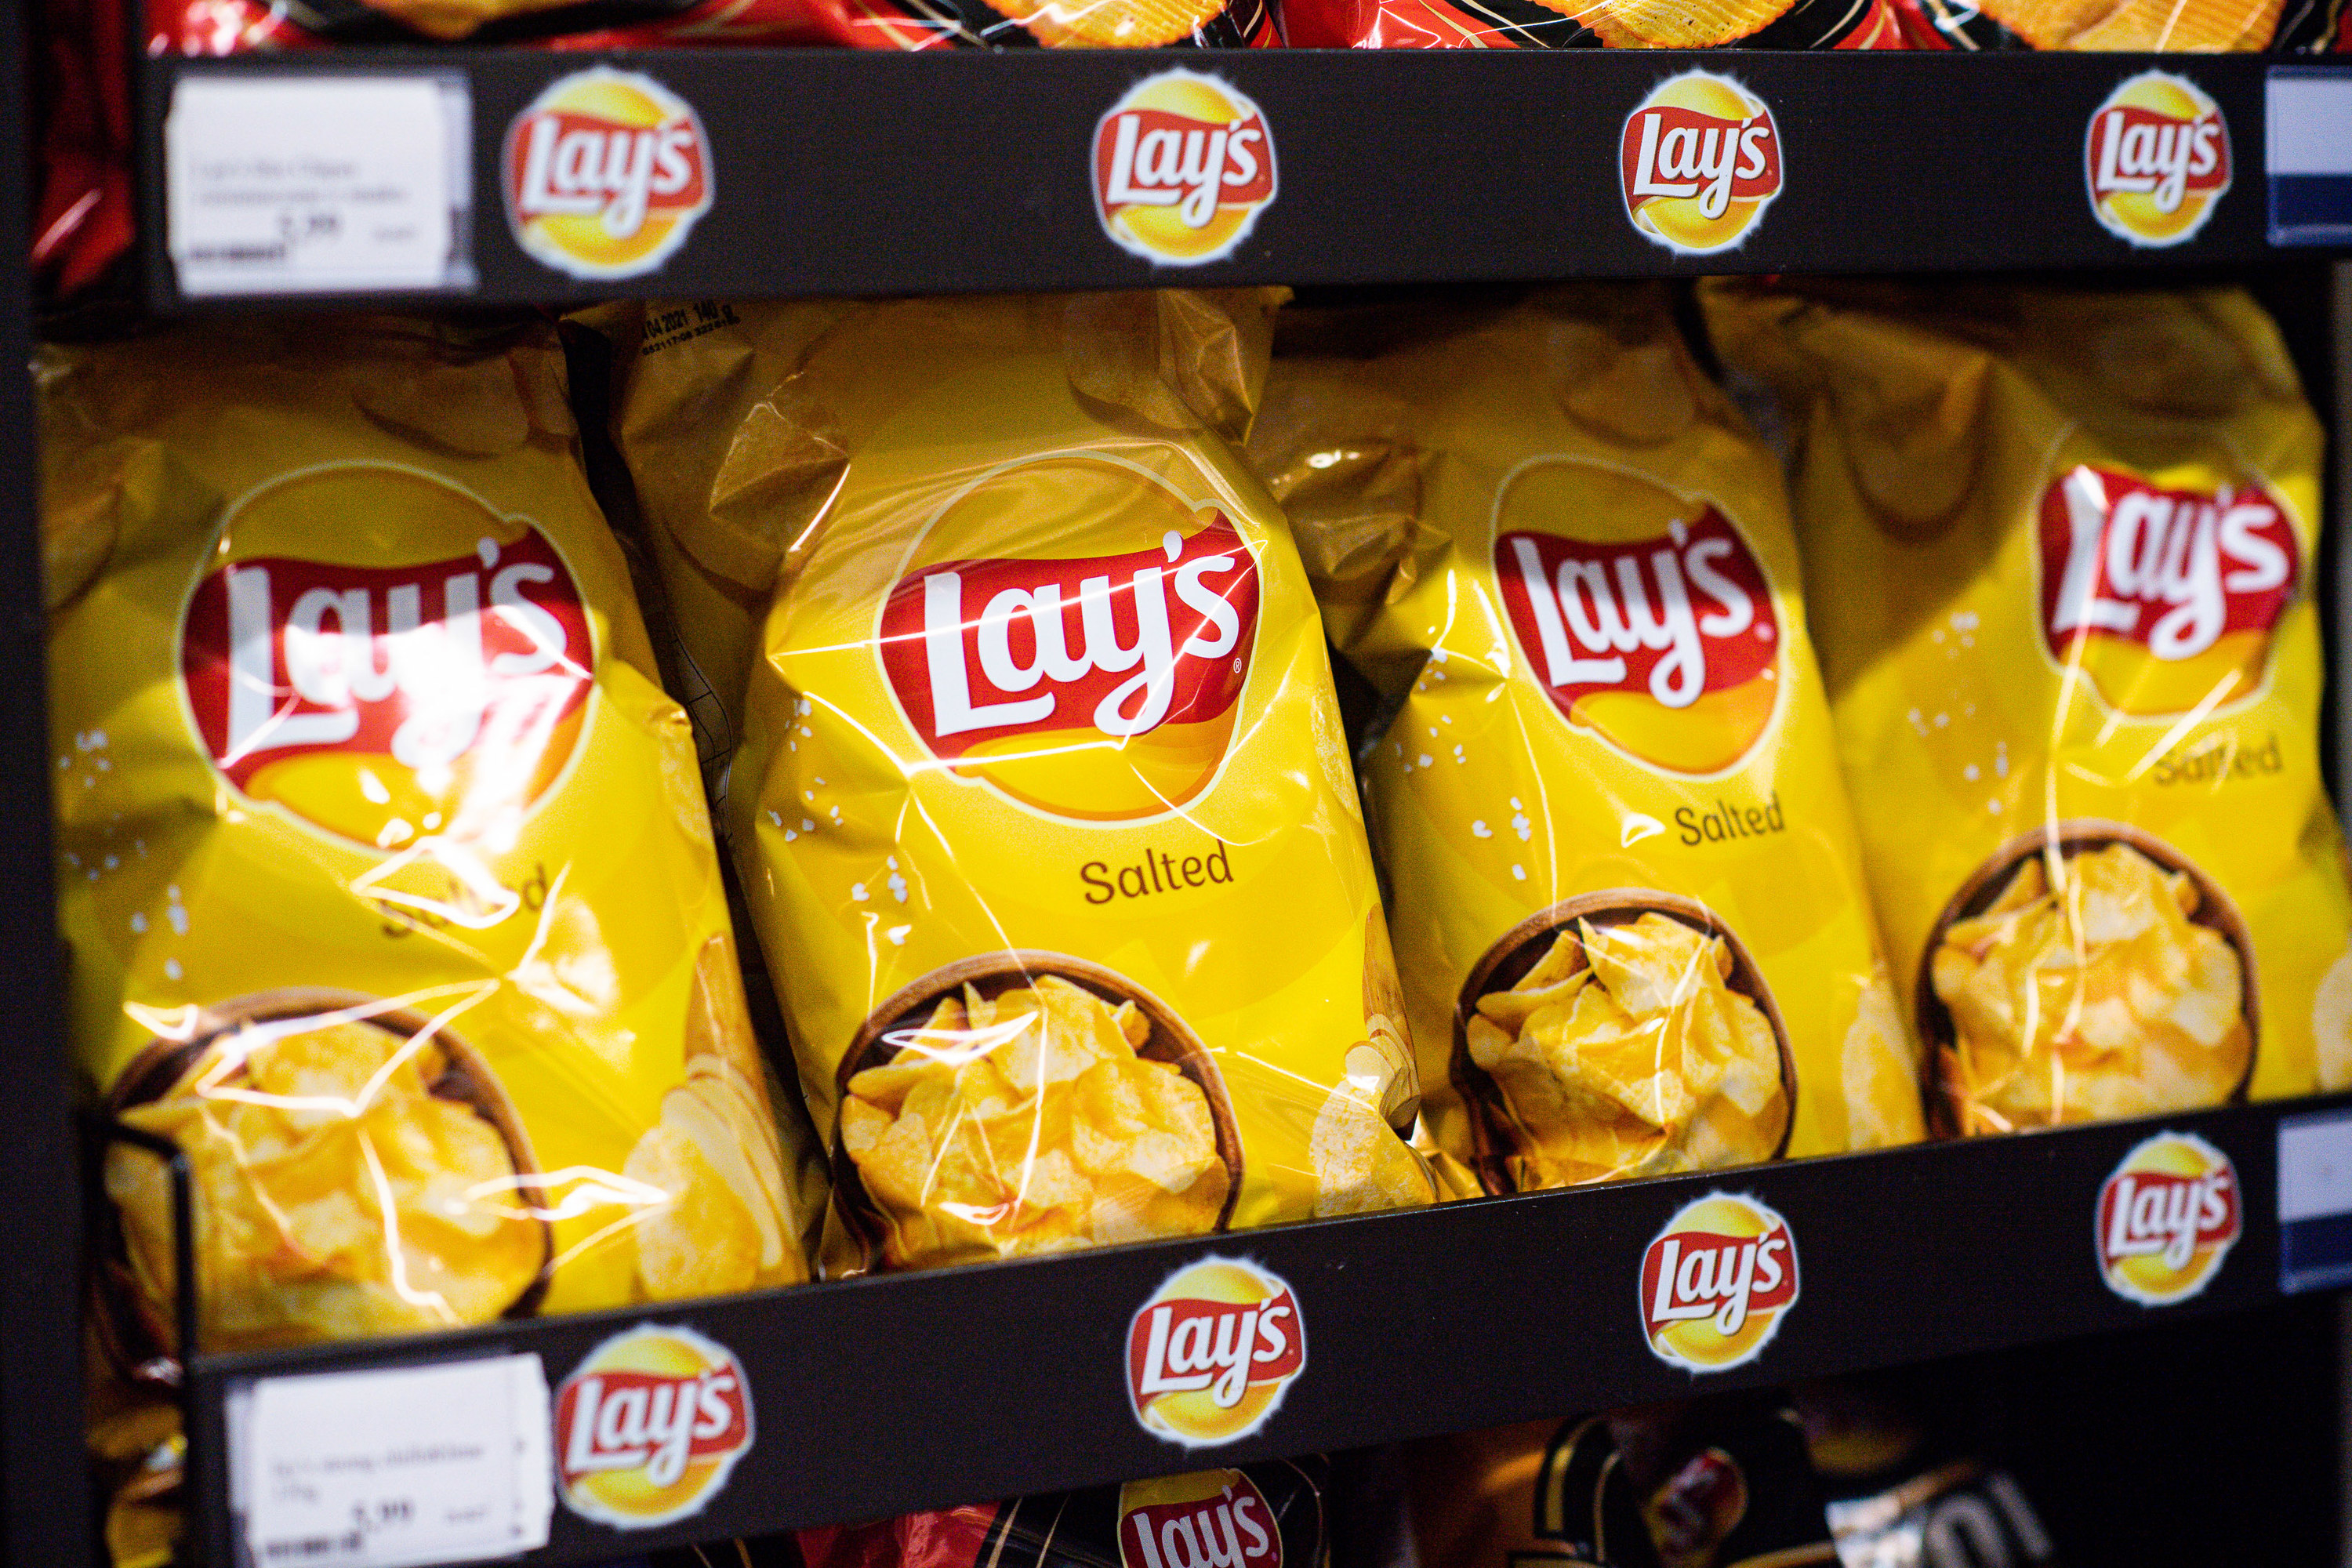 A shelf of Lay's chips in a store